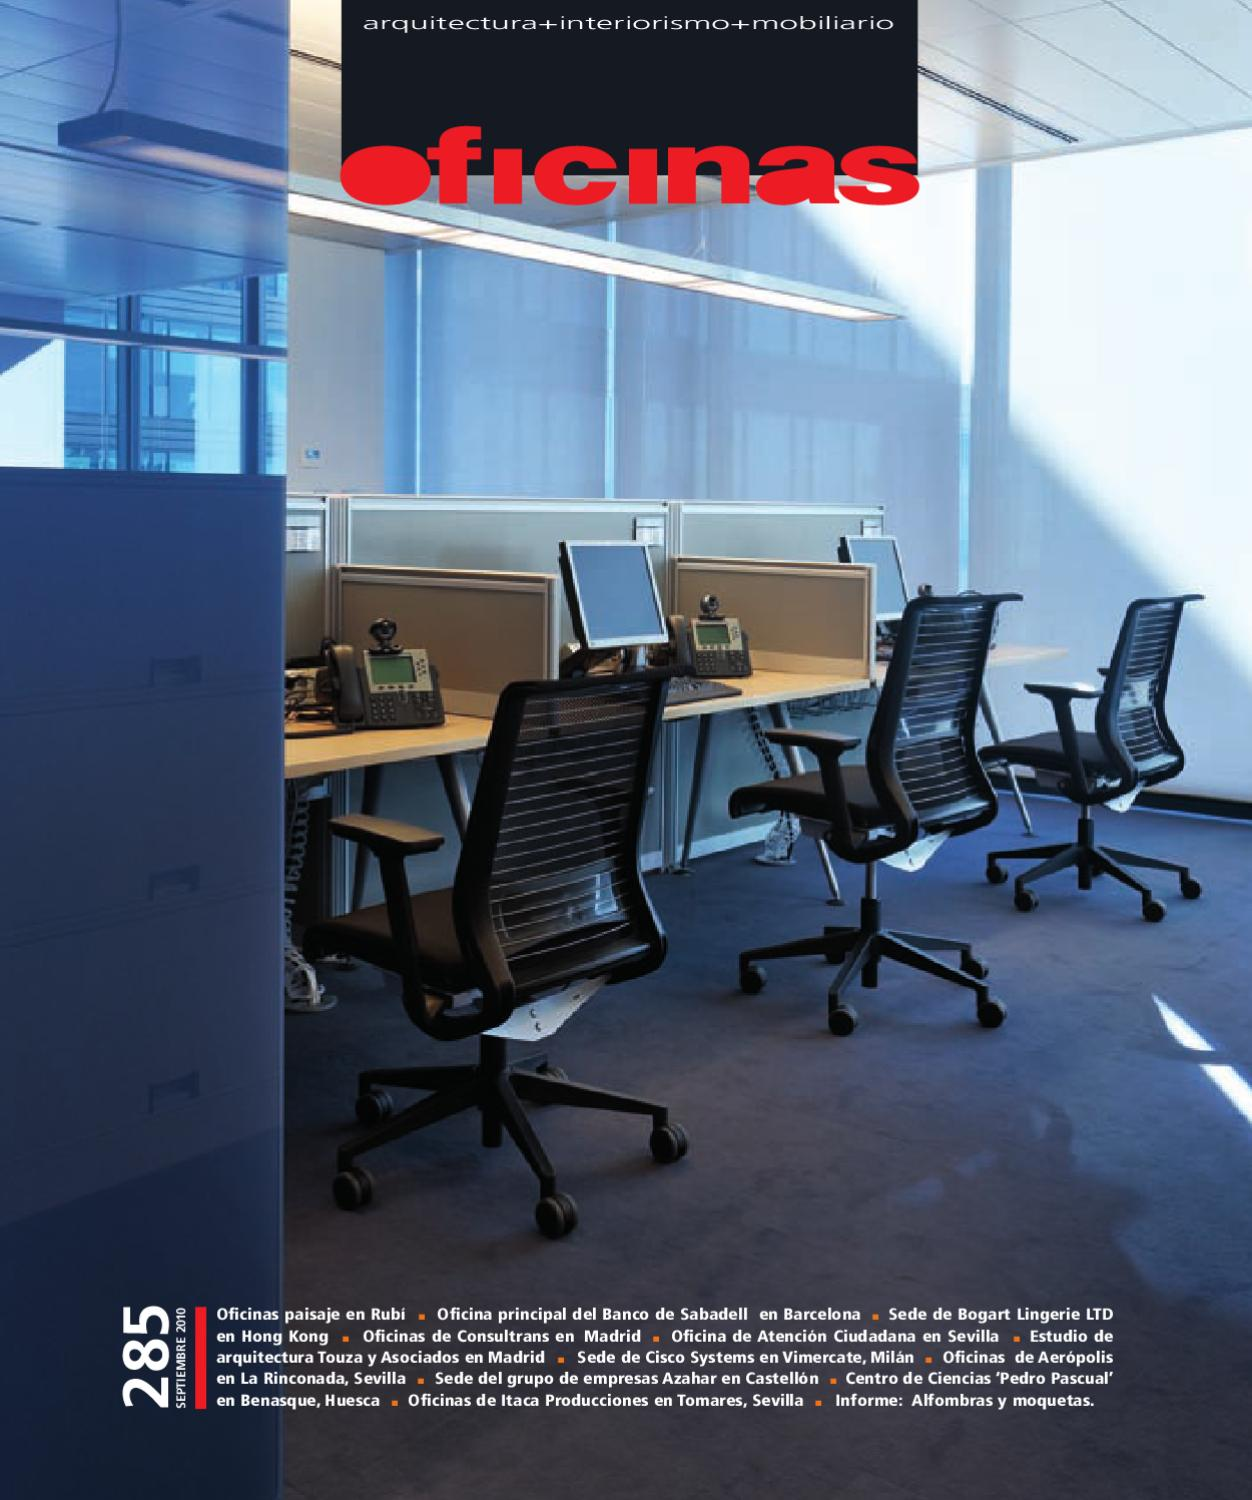 Oficinas - 285 by Digital Newspapers S.L. - issuu